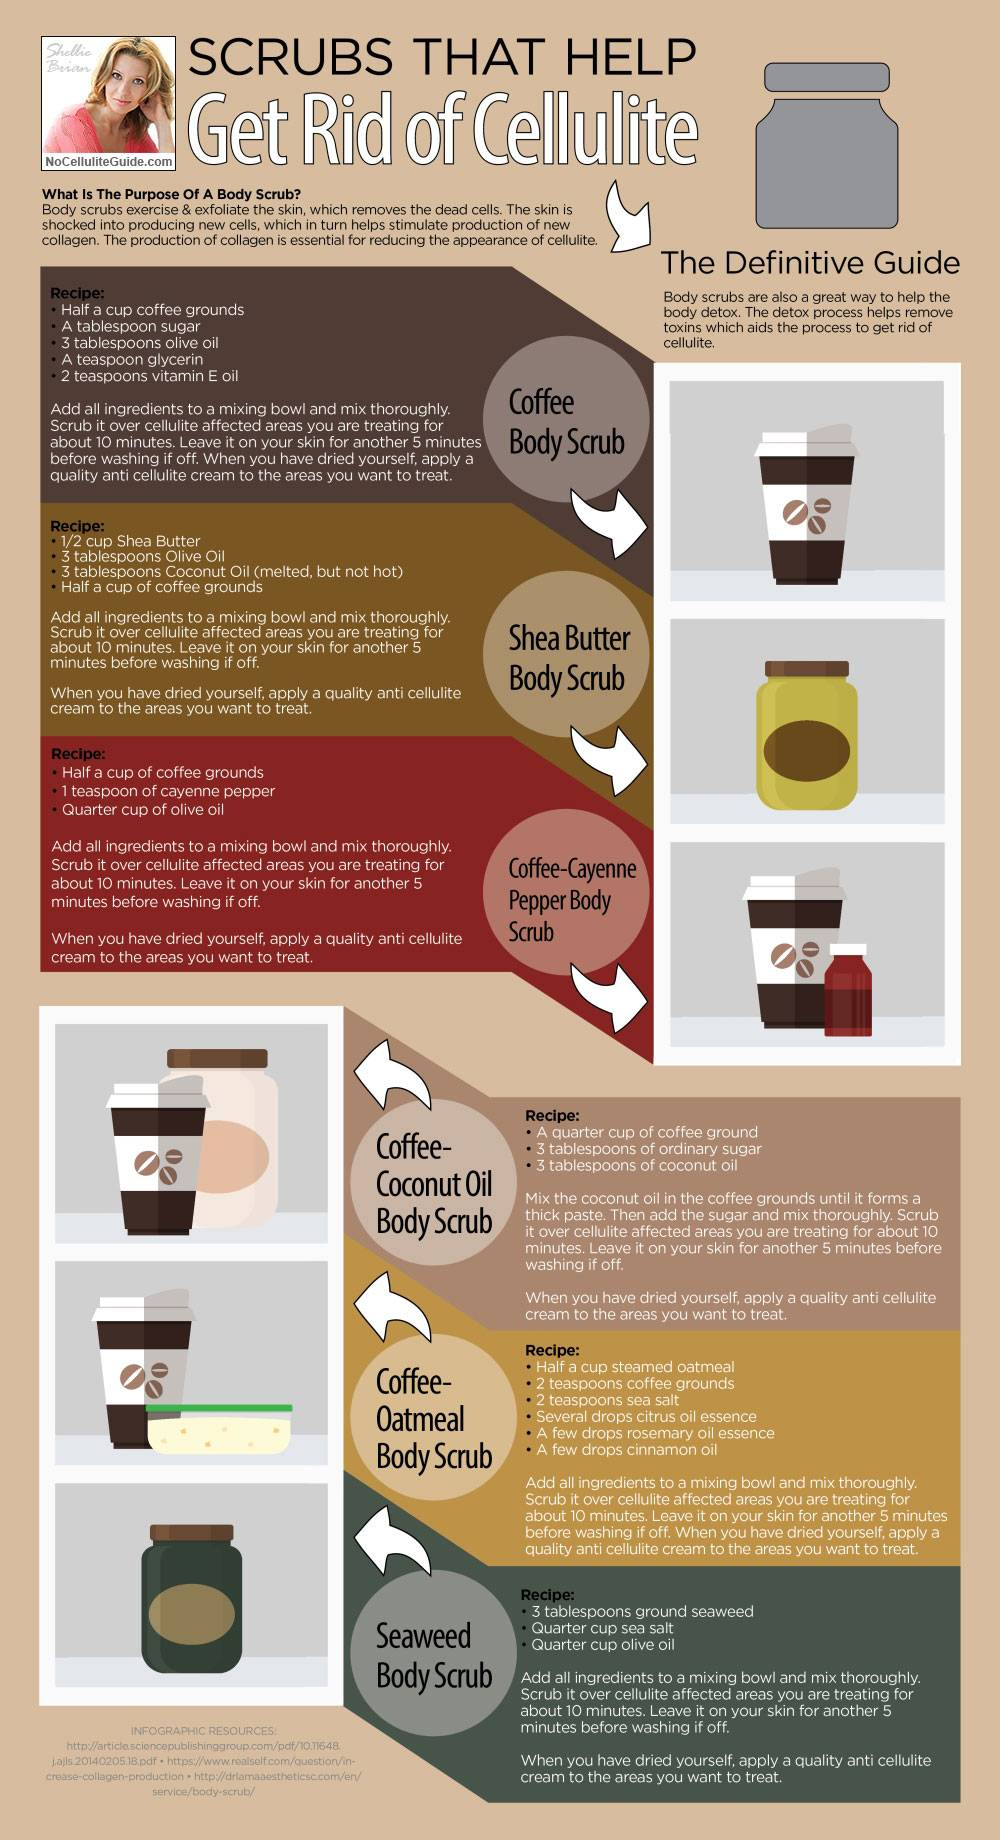 Scrubs that Gets Rid of Cellulite - The Definitive Guide (Infographic)